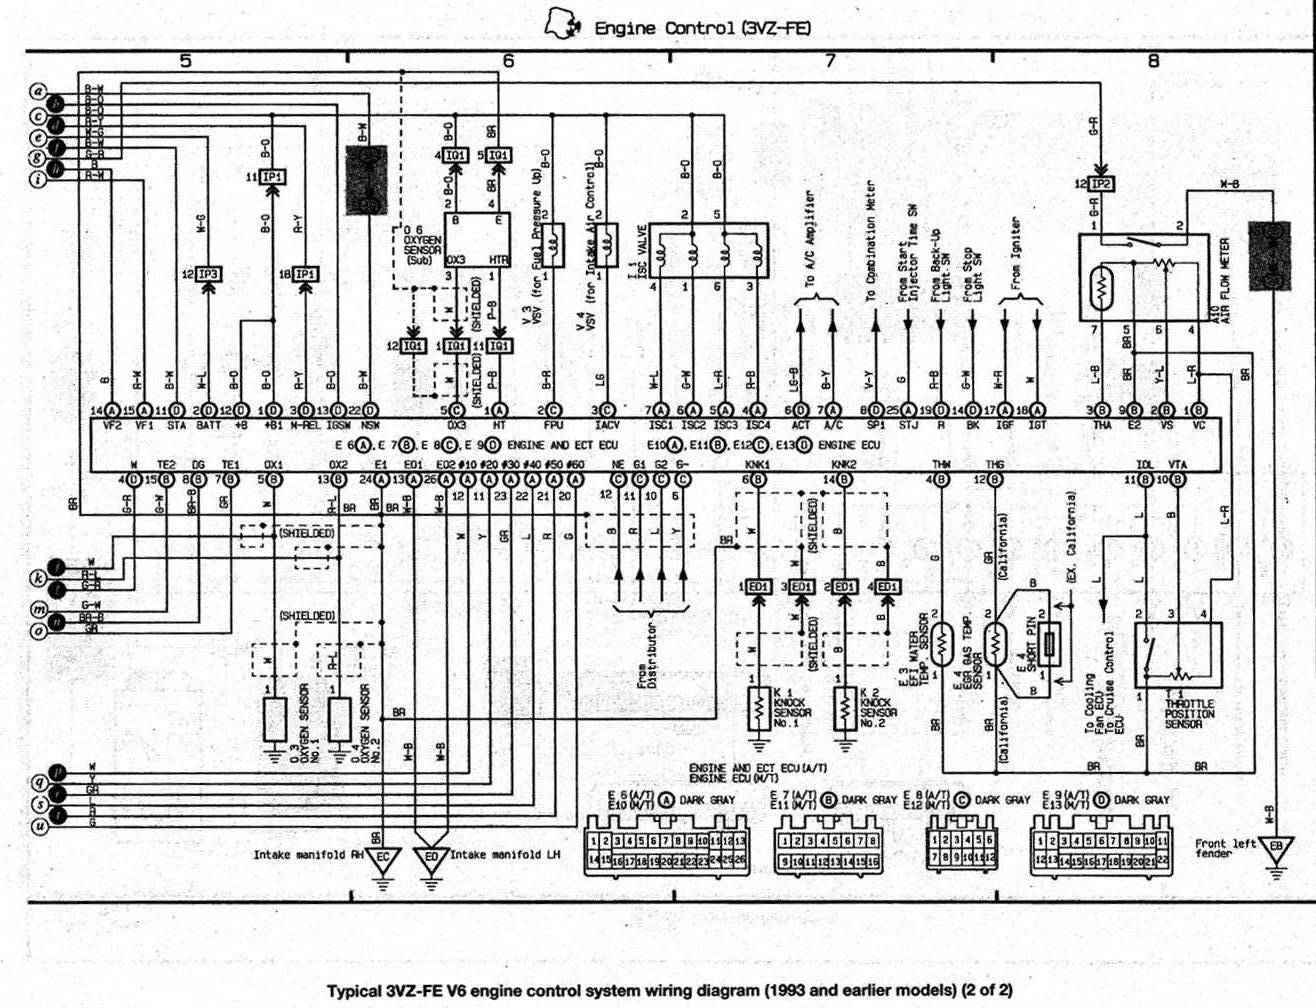 1993 toyota celica radio wiring diagram of a single phase dol starter 3sgte engine get free image about